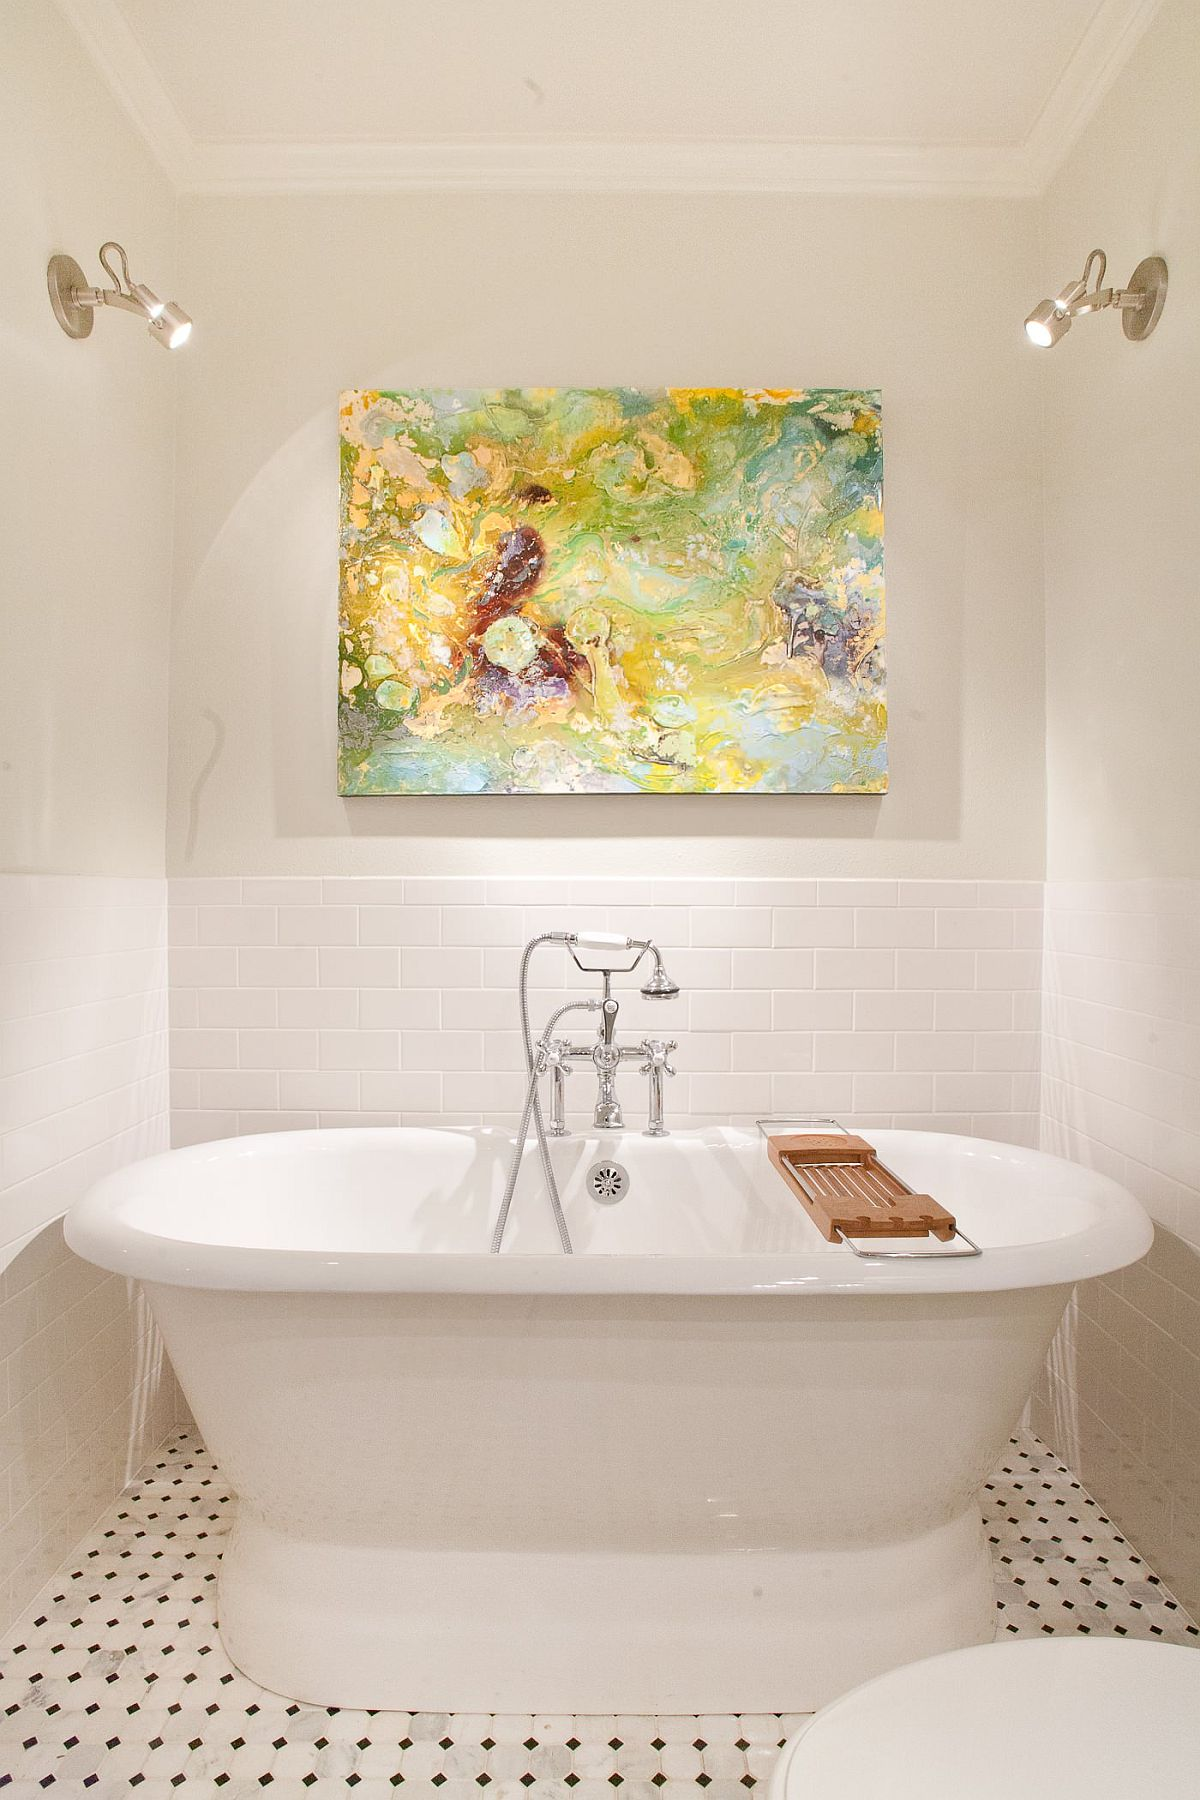 Creative use of lighting and wall art in the small modern bathroom